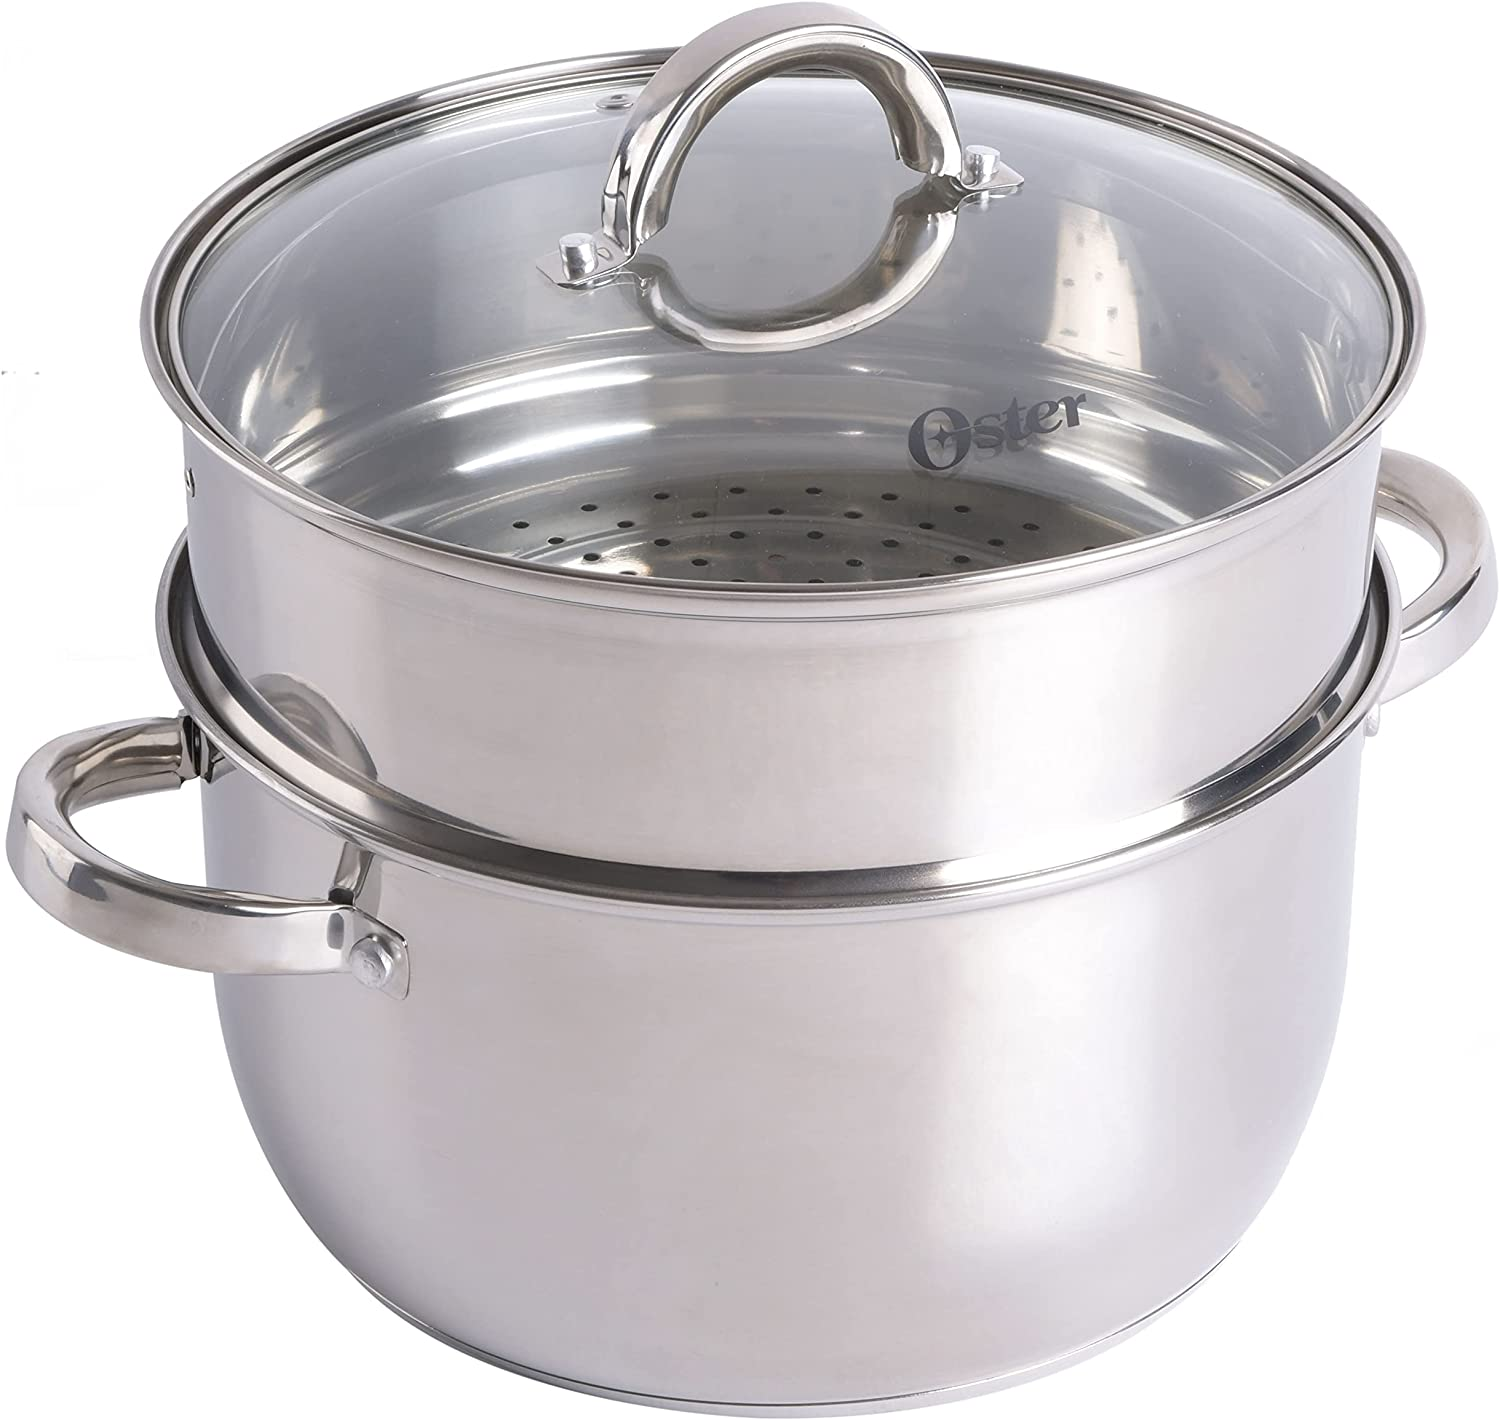 Oster New product! New type Sangerfield 6 Qt Dutch Super beauty product restock quality top with Oven Casserole Basket Steamer